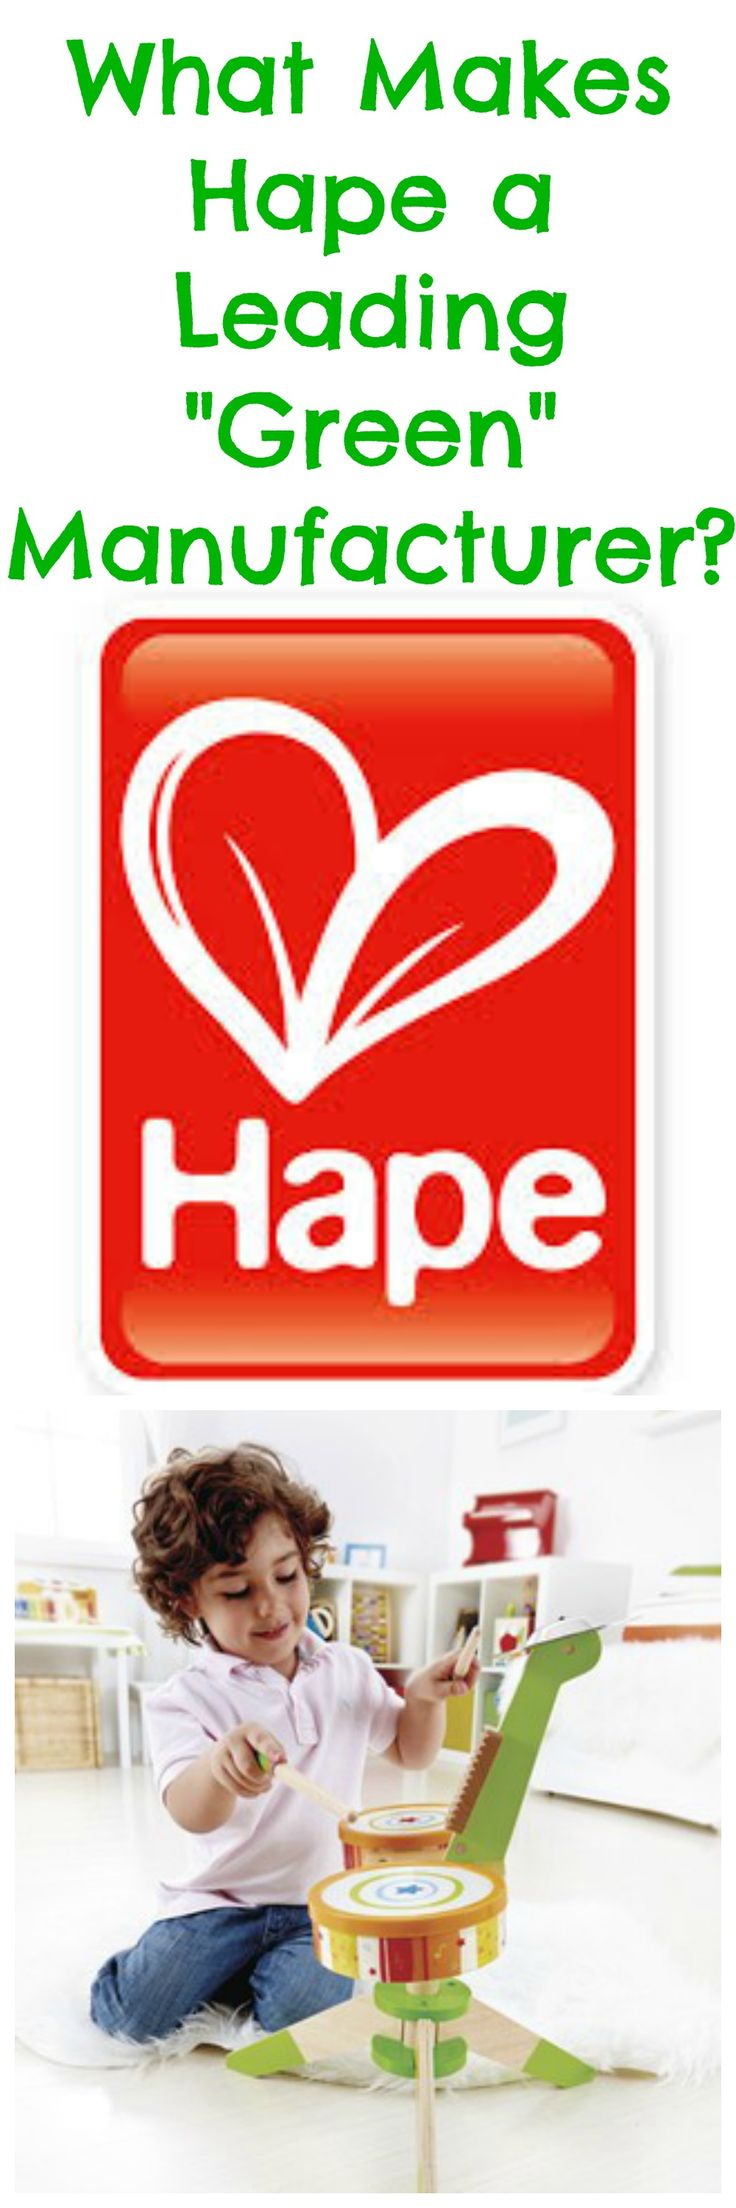 Click here to learn why Hape is an industry leader in the manufacturing of green toys: http://kiddokorner.com/blog/what-makes-hape-a-green-manufacturer.html